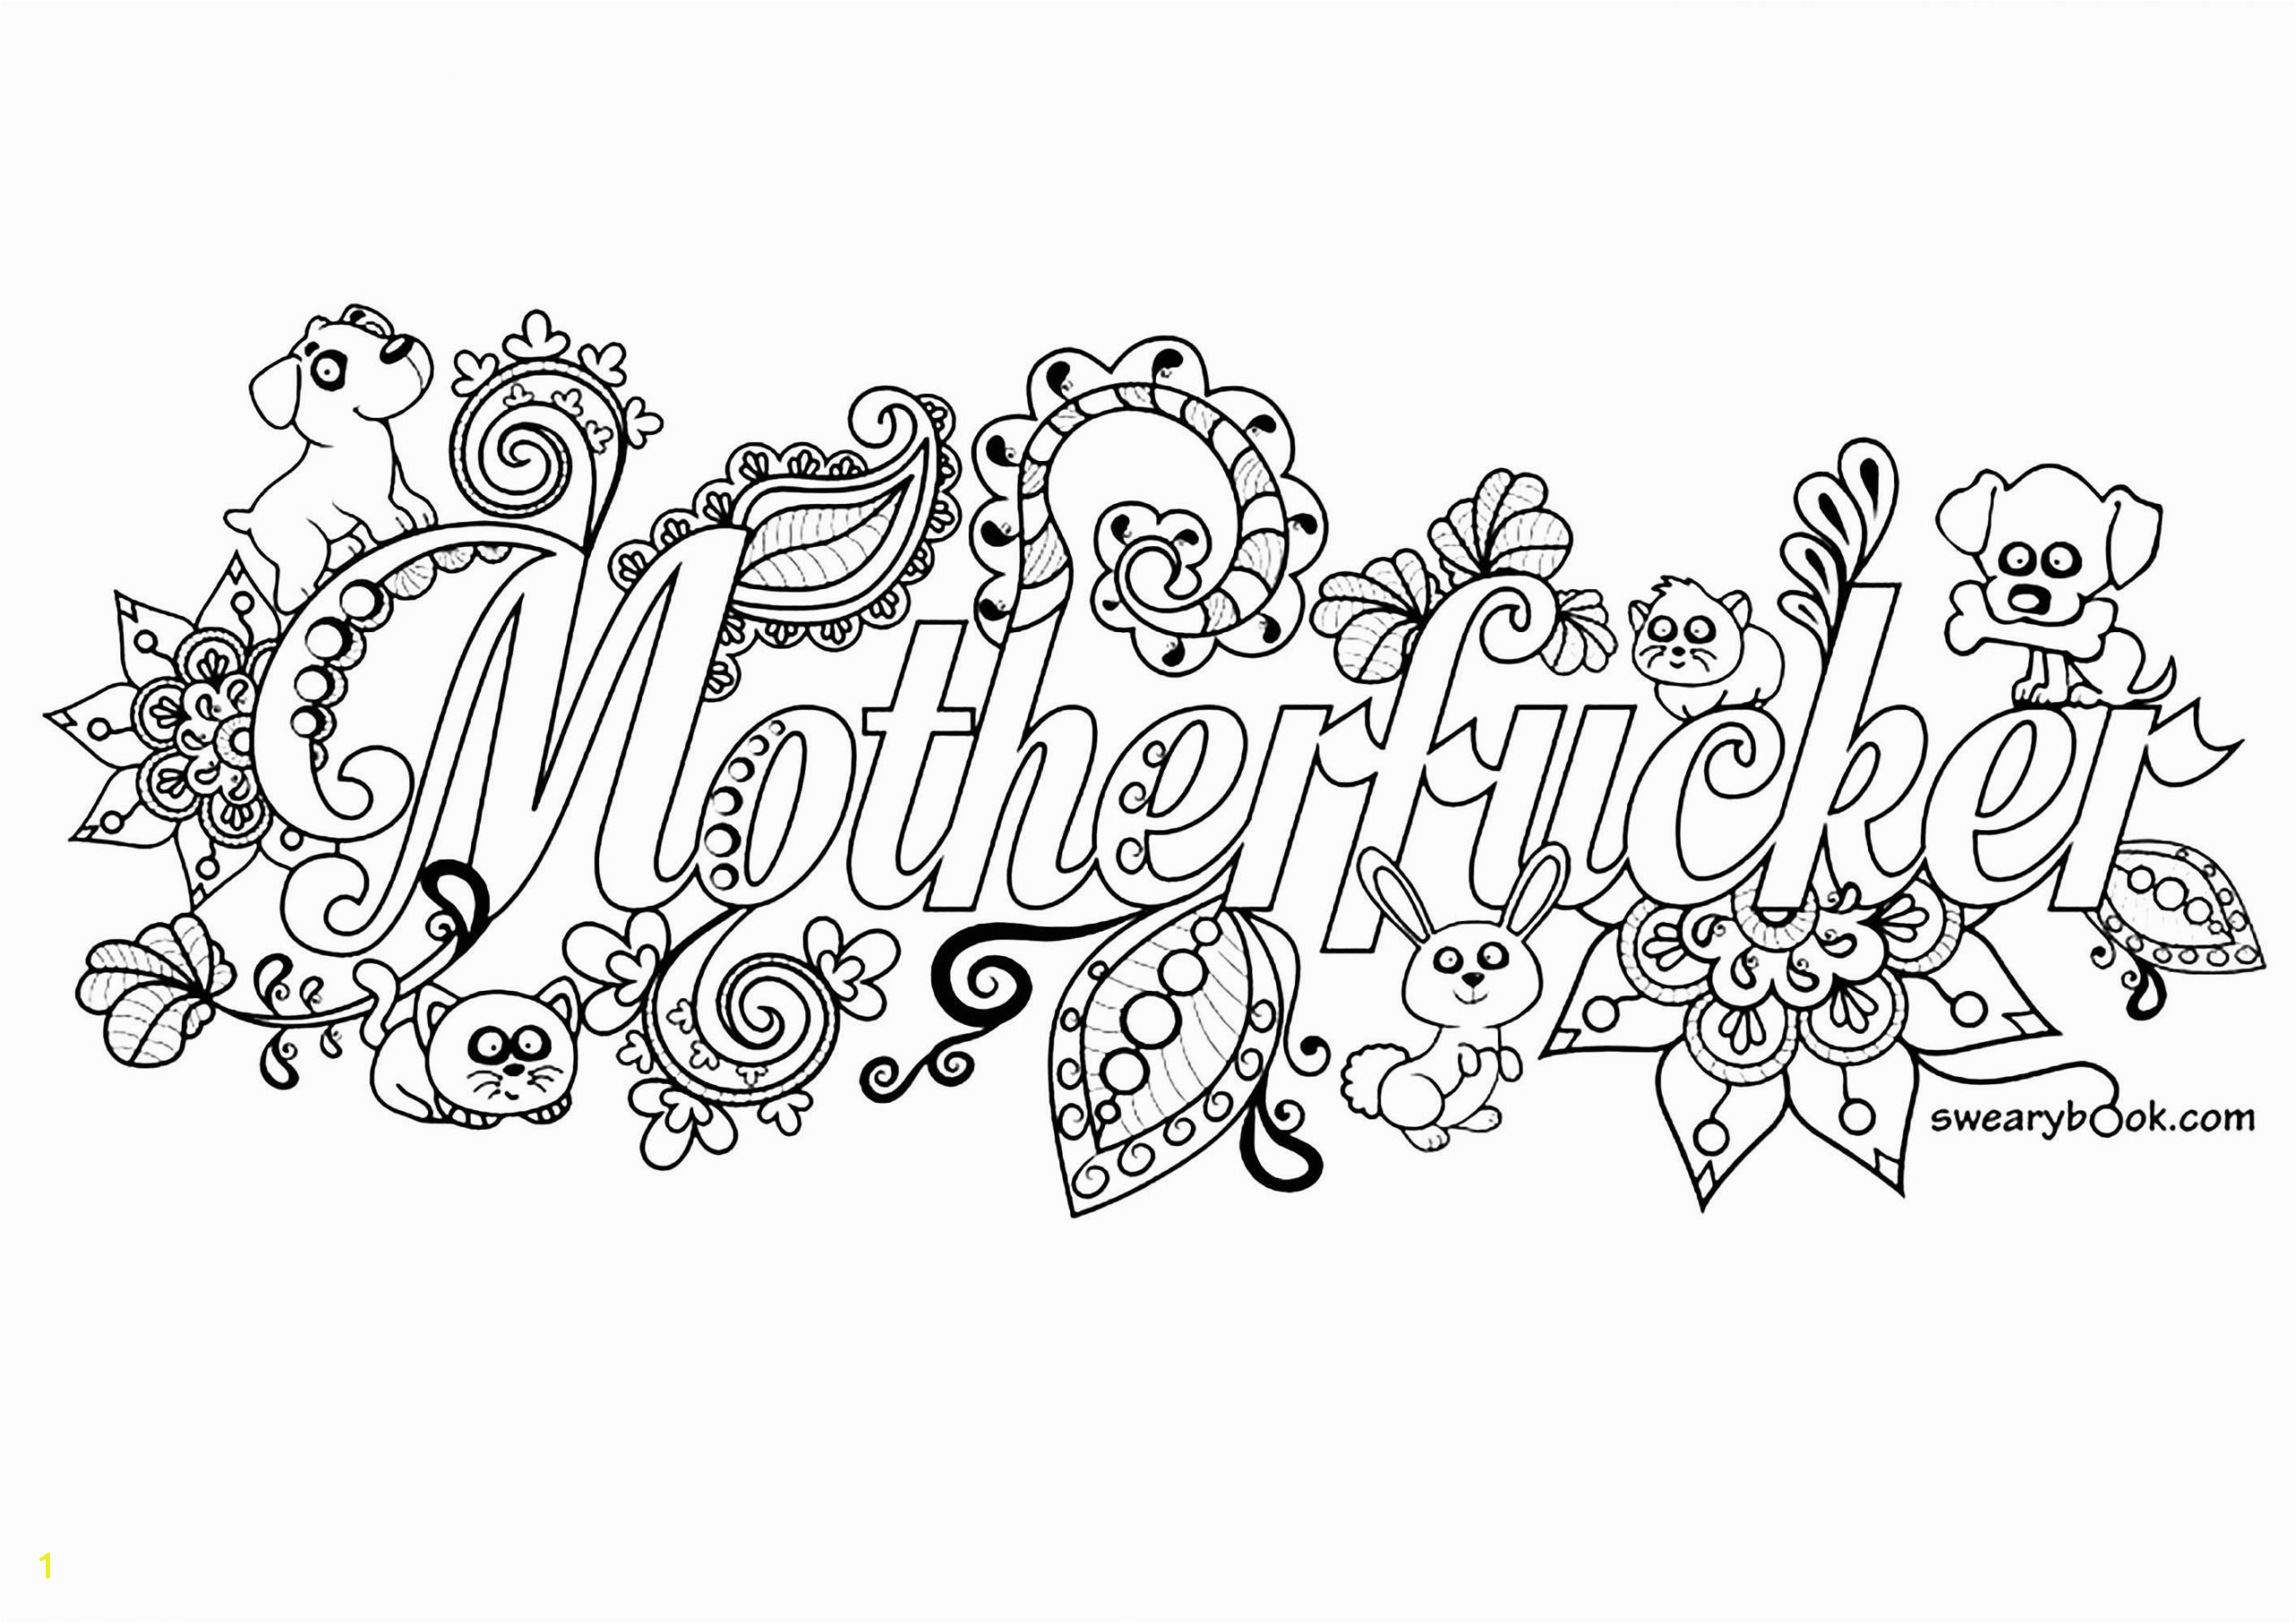 free swear word coloring pages for adults lovely free printable coloring pages for adults cuss words of free swear word coloring pages for adults scaled